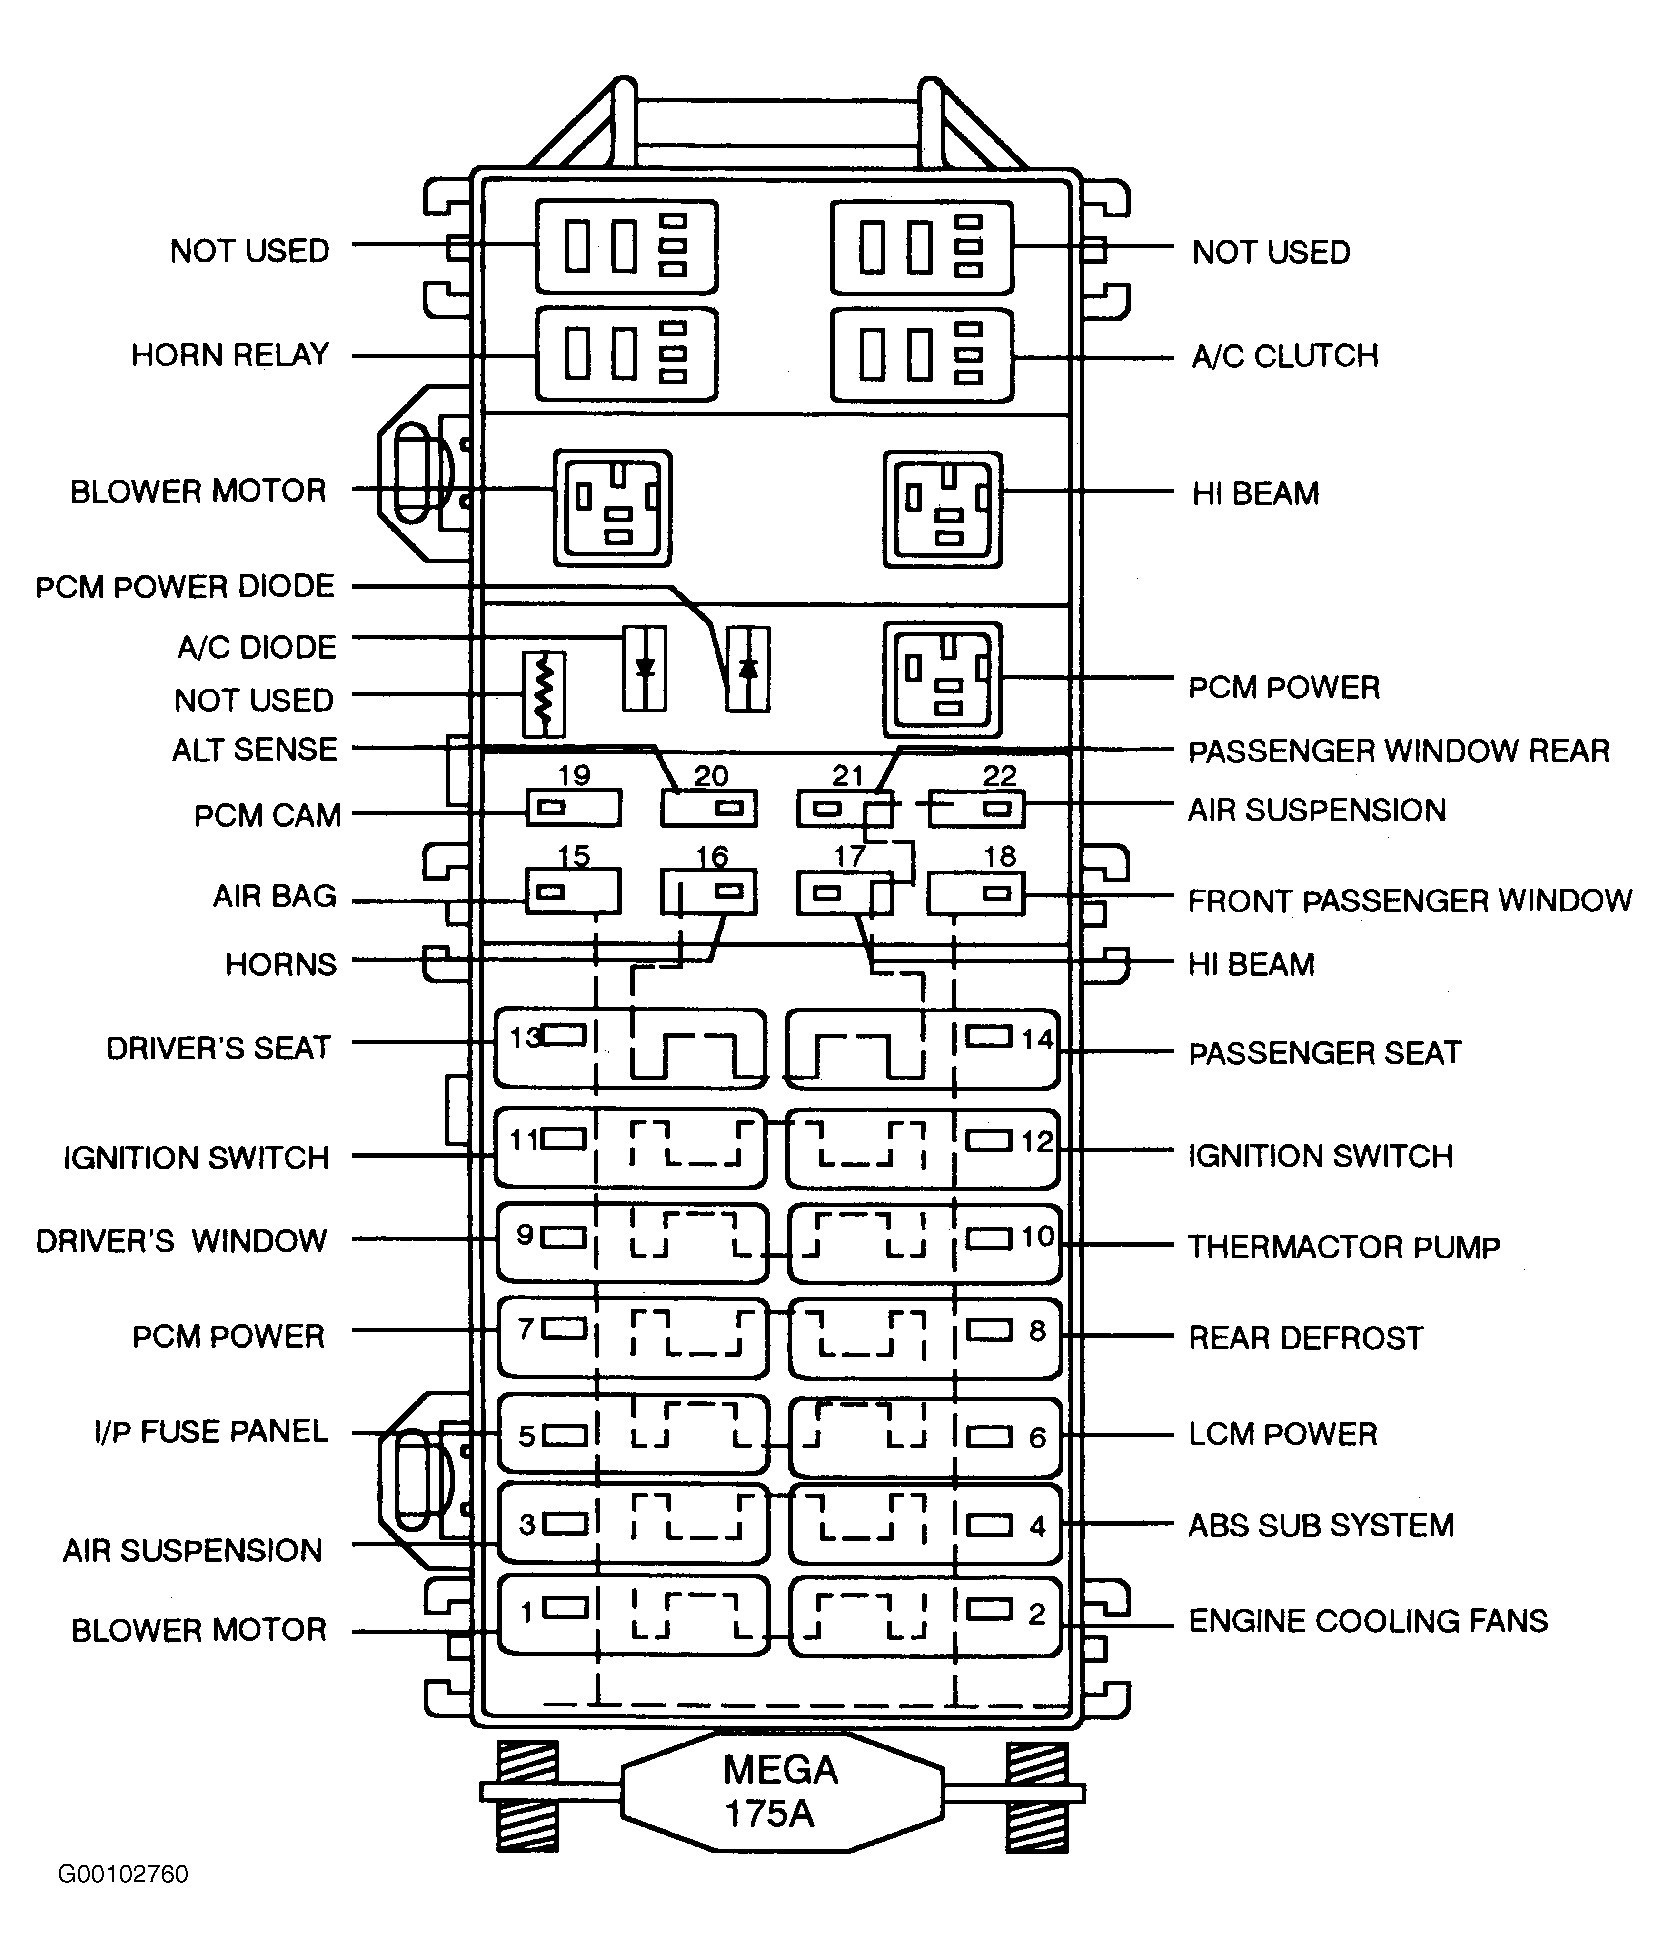 hight resolution of lincoln town car air suspension wiring diagram